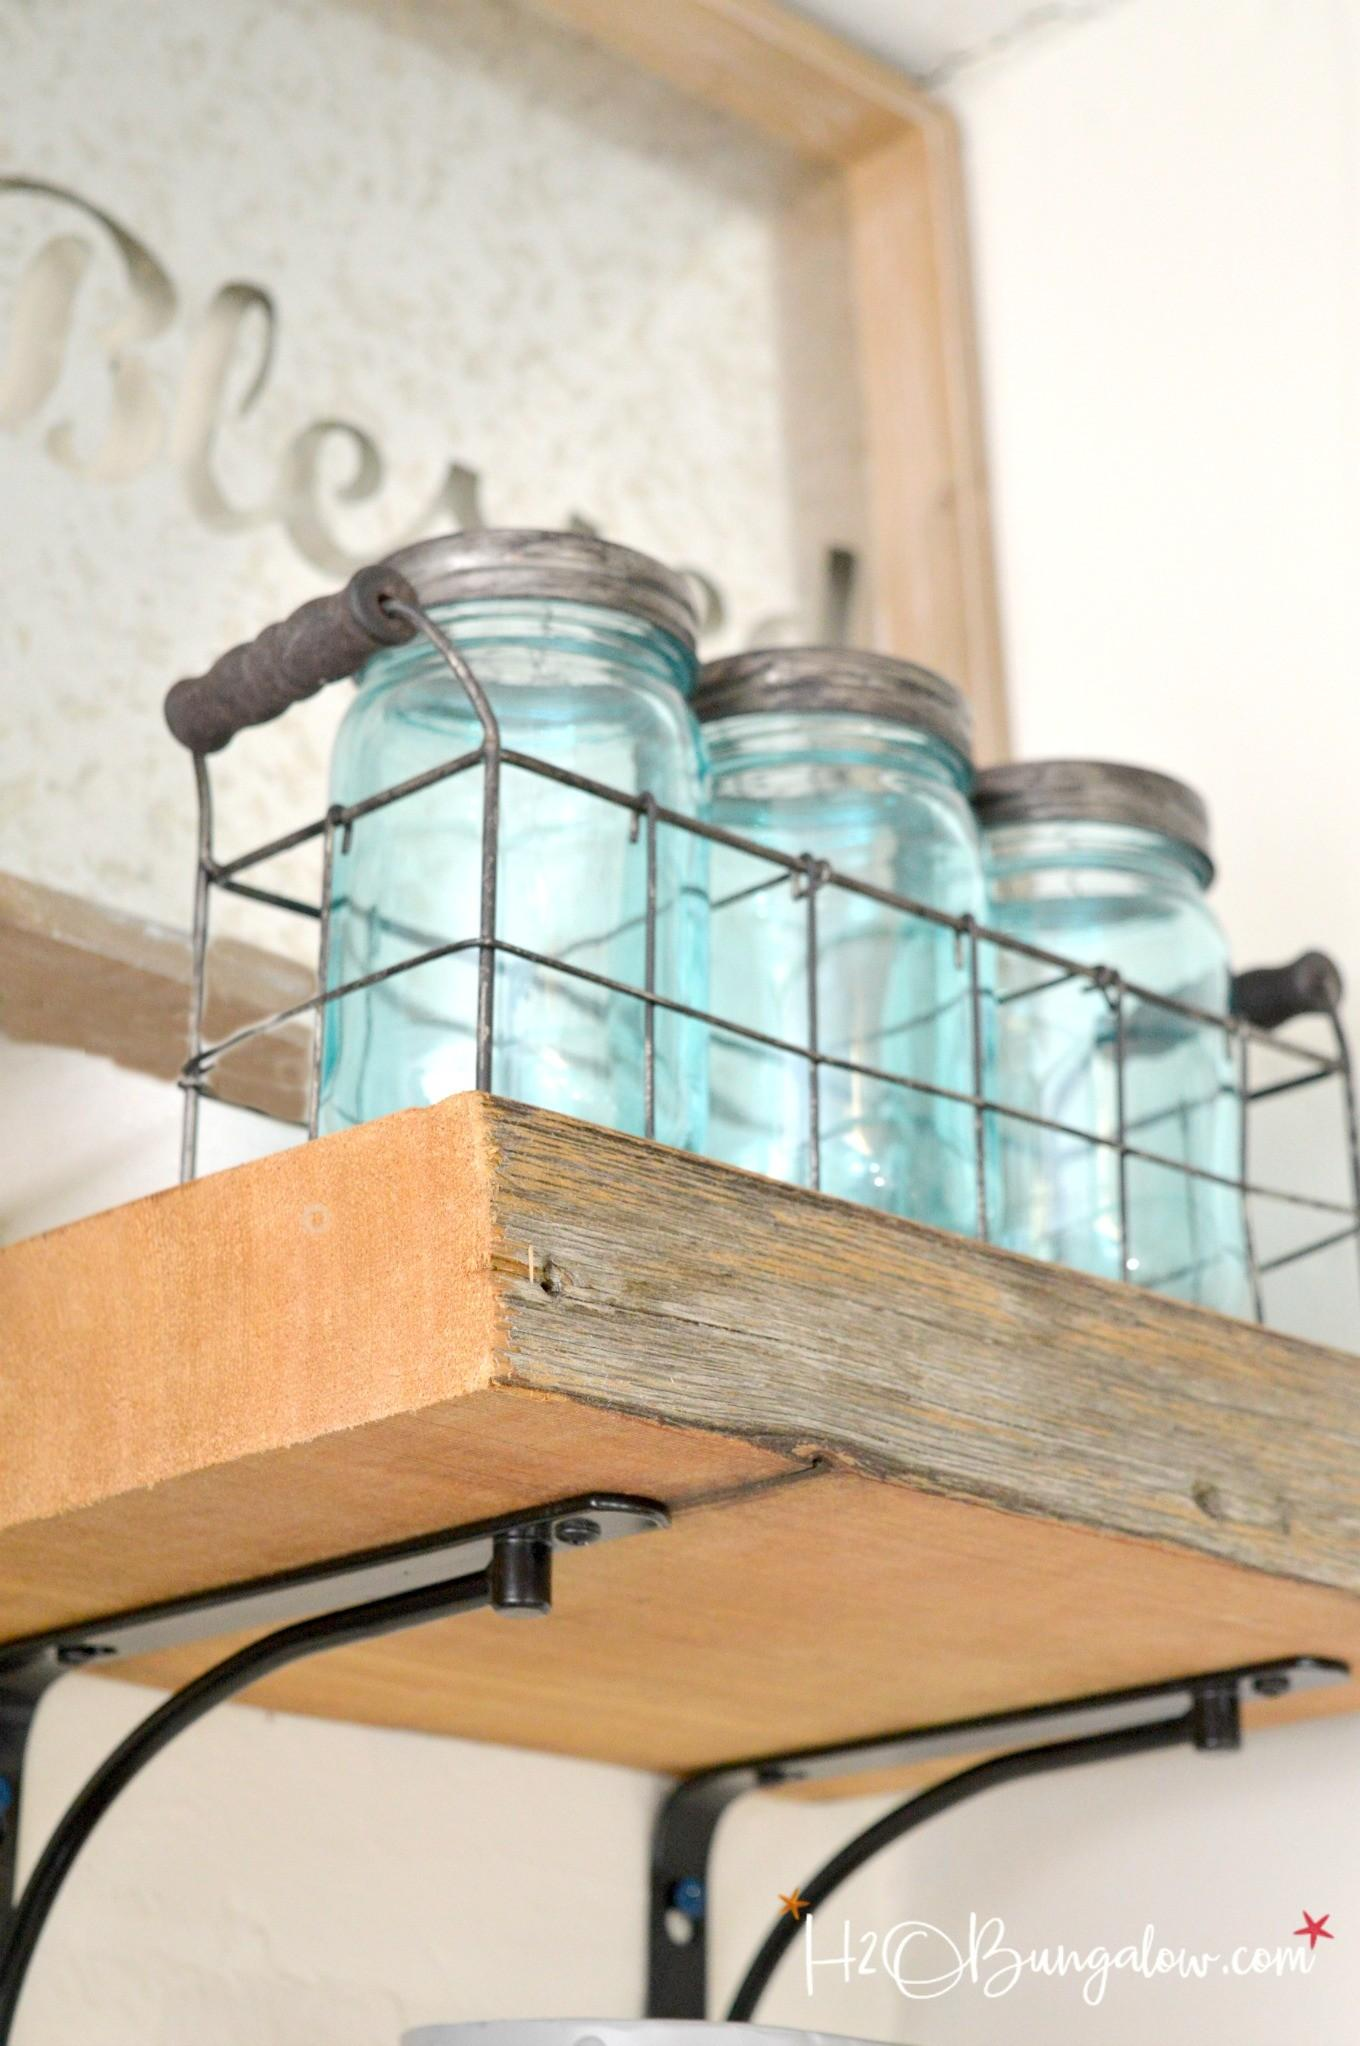 Tips Hanging Thick Wood Shelves H20bungalow